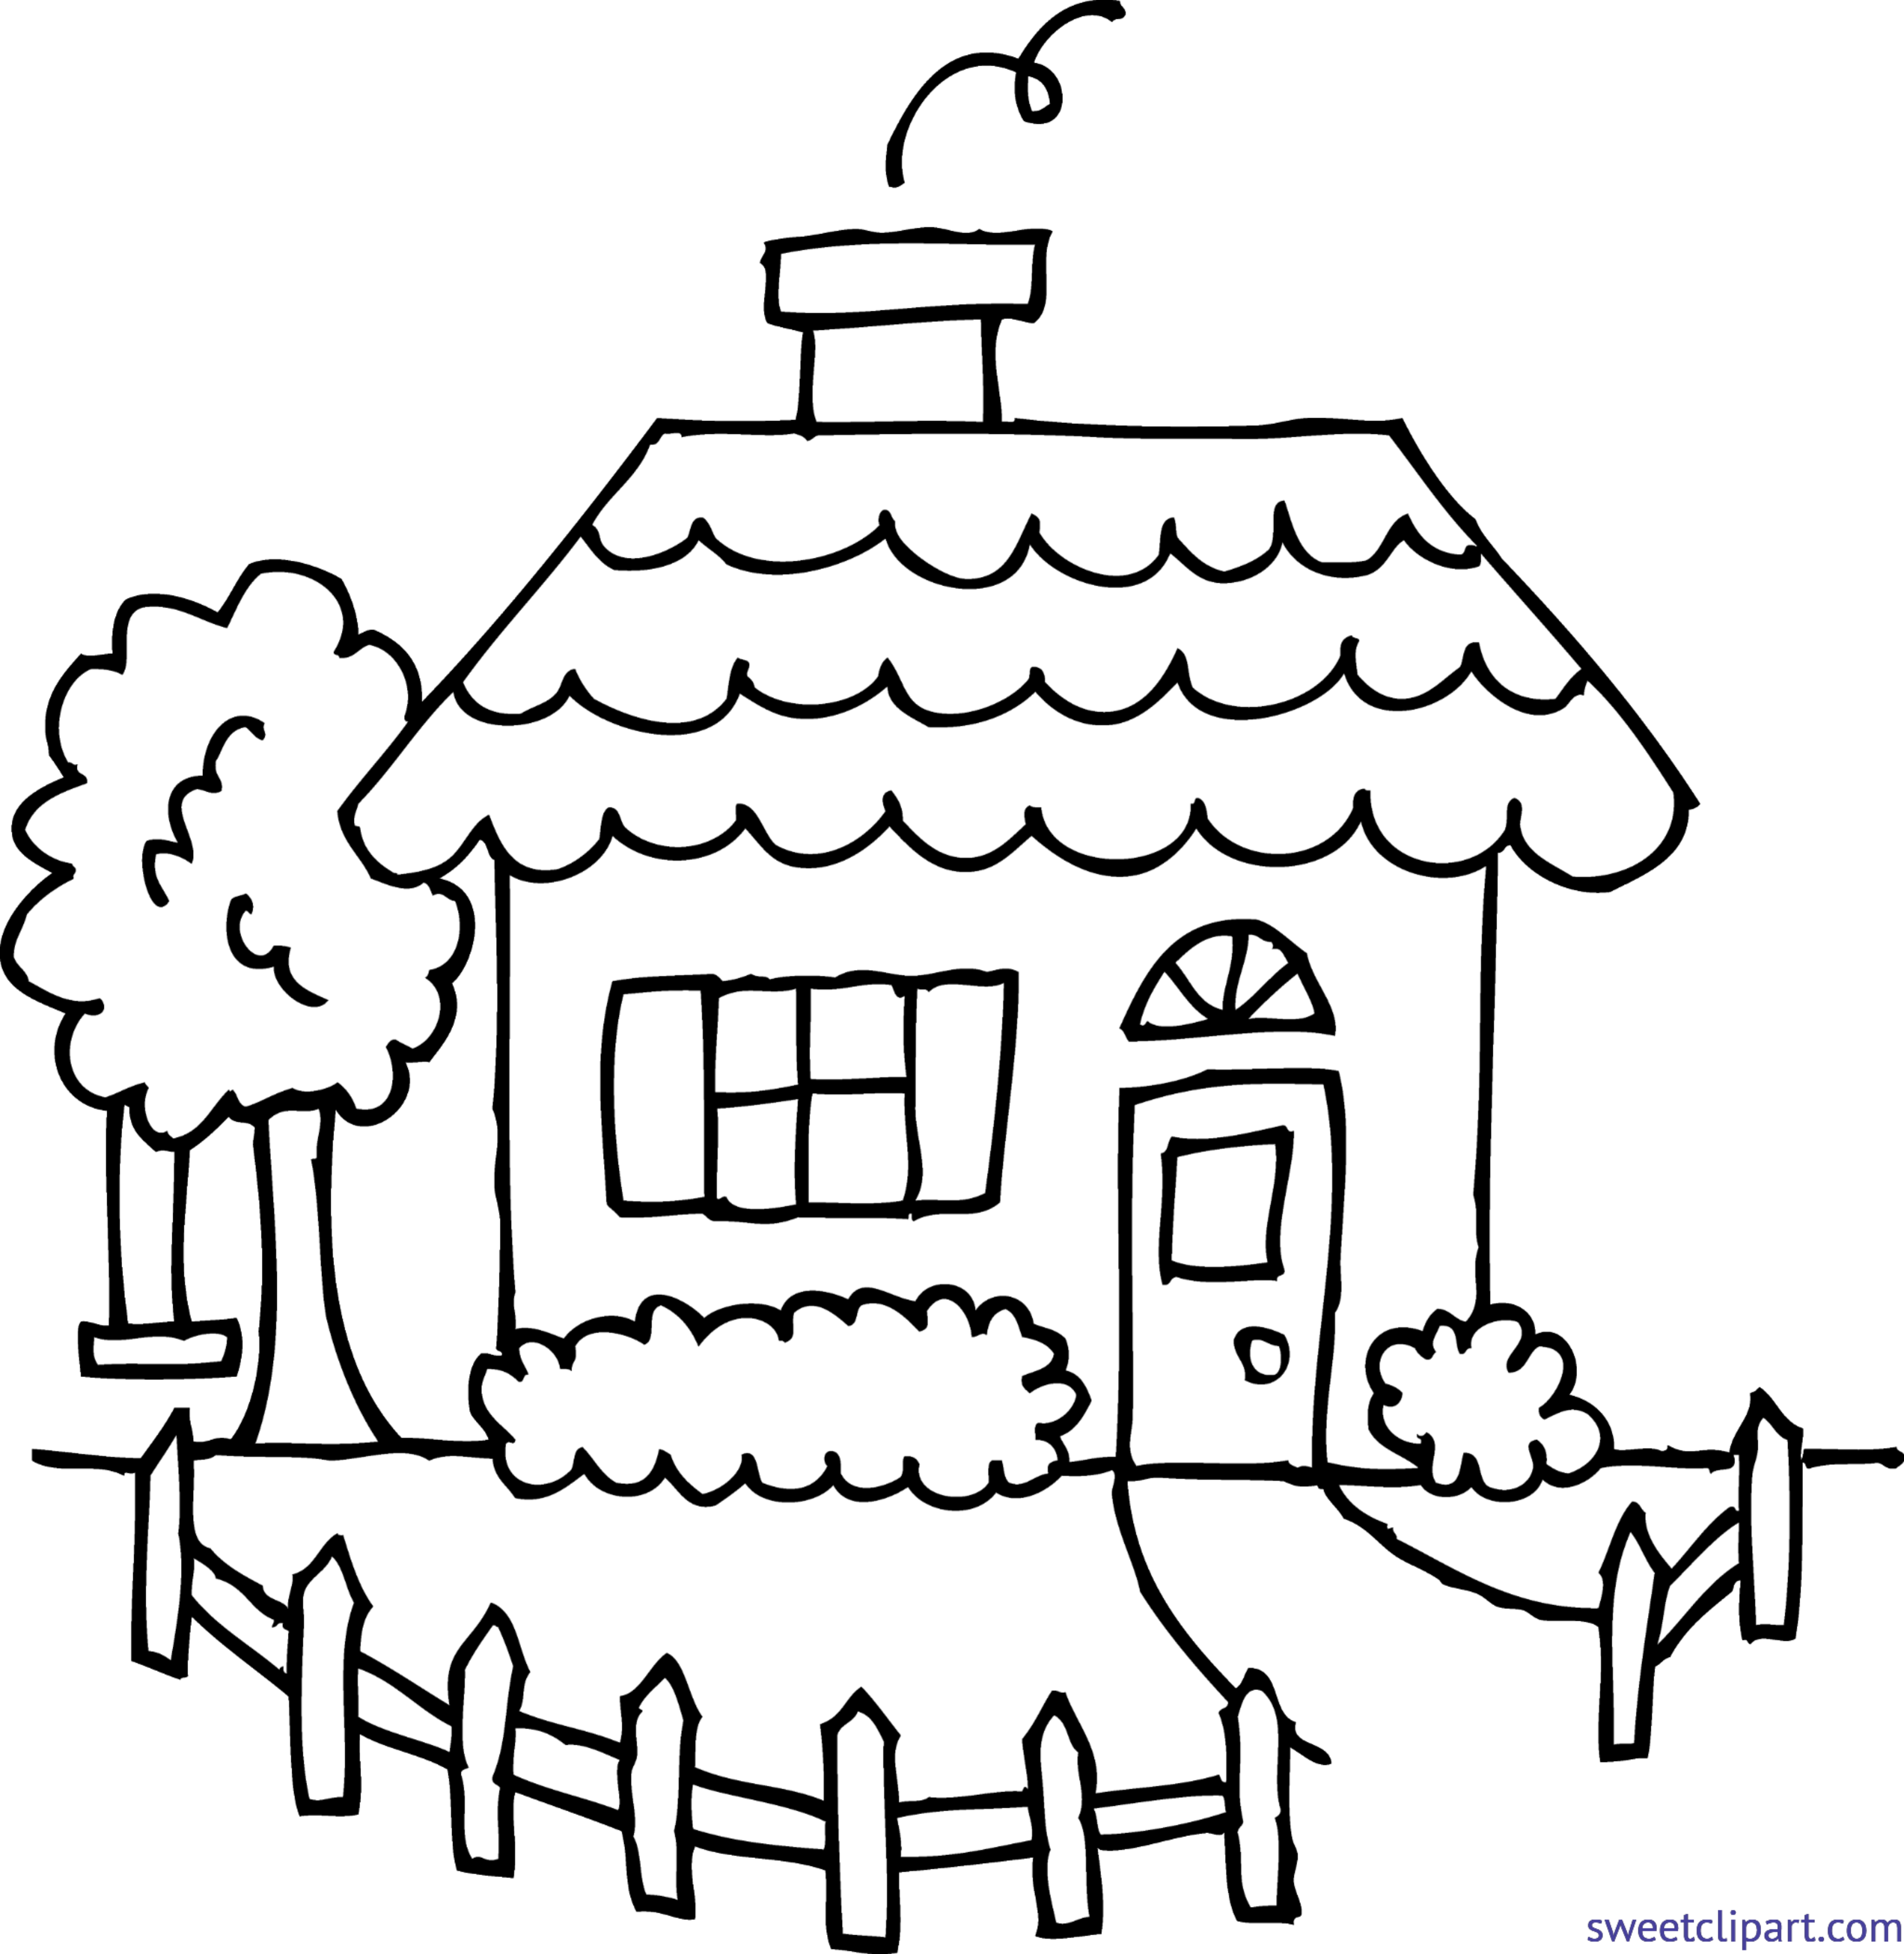 Cute House 1 Coloring Page Clip Art Sweet Clip Art